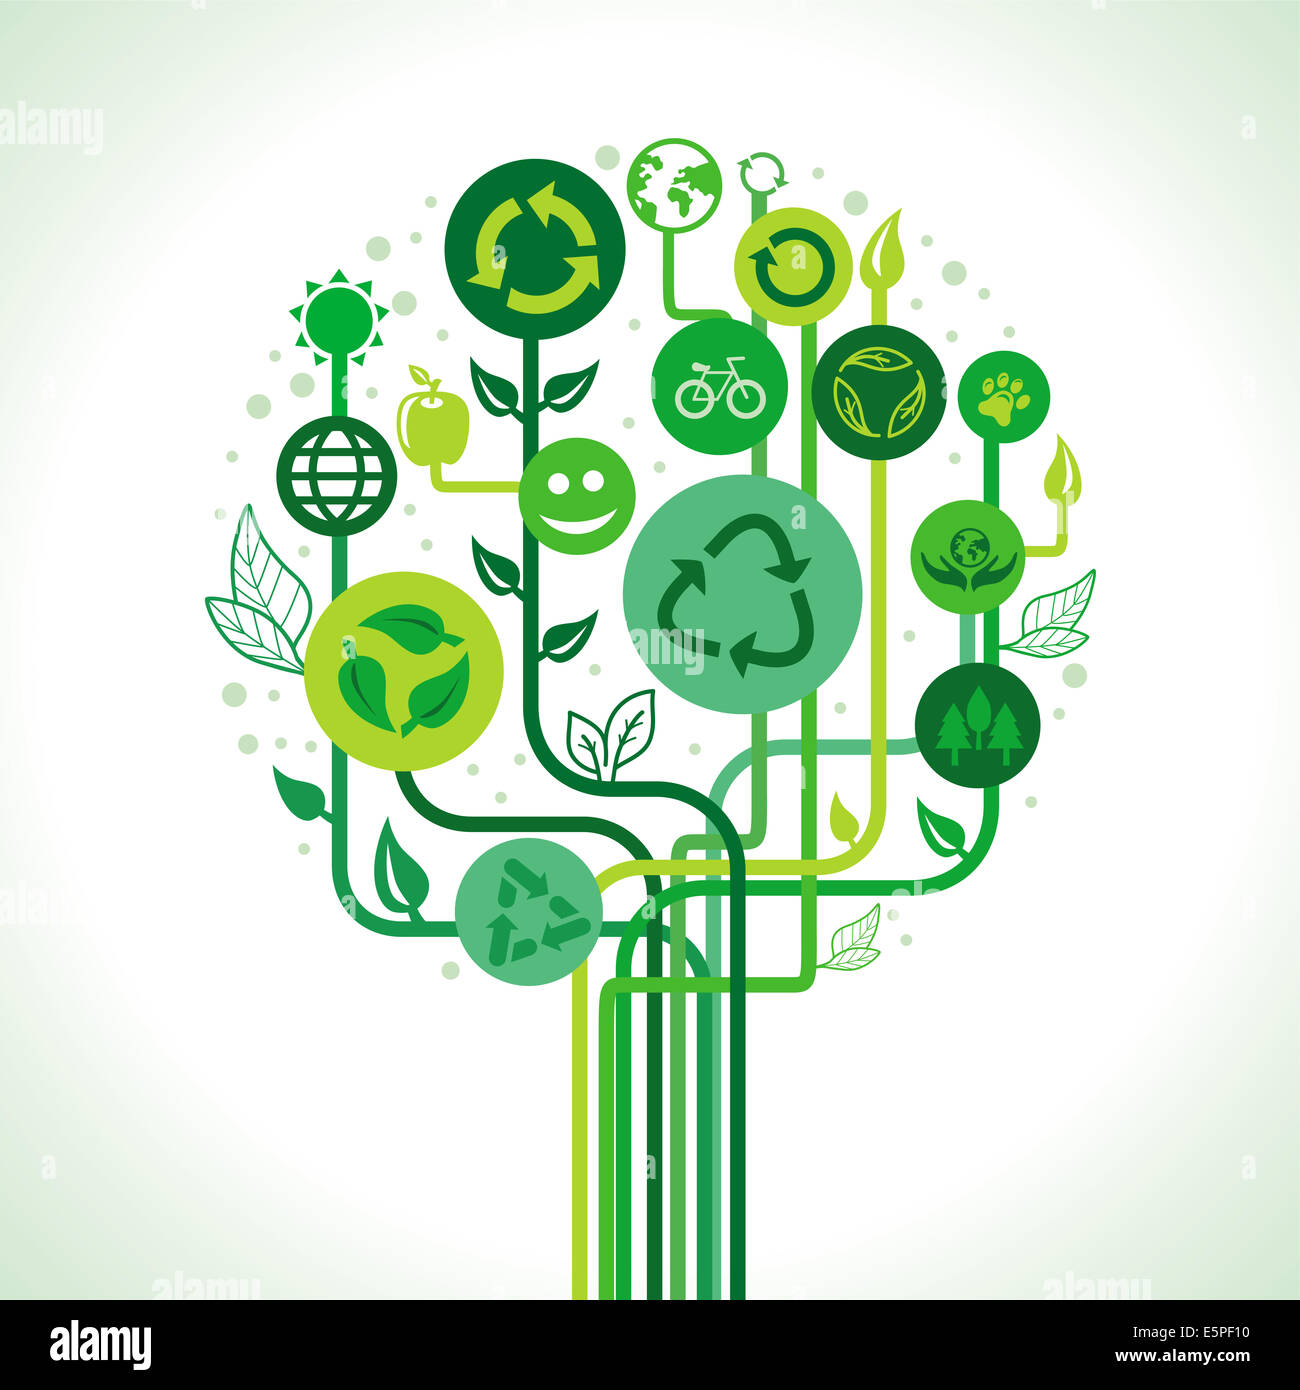 Ecology concept - abstract green tree with recycle signs and symbols - Stock Image